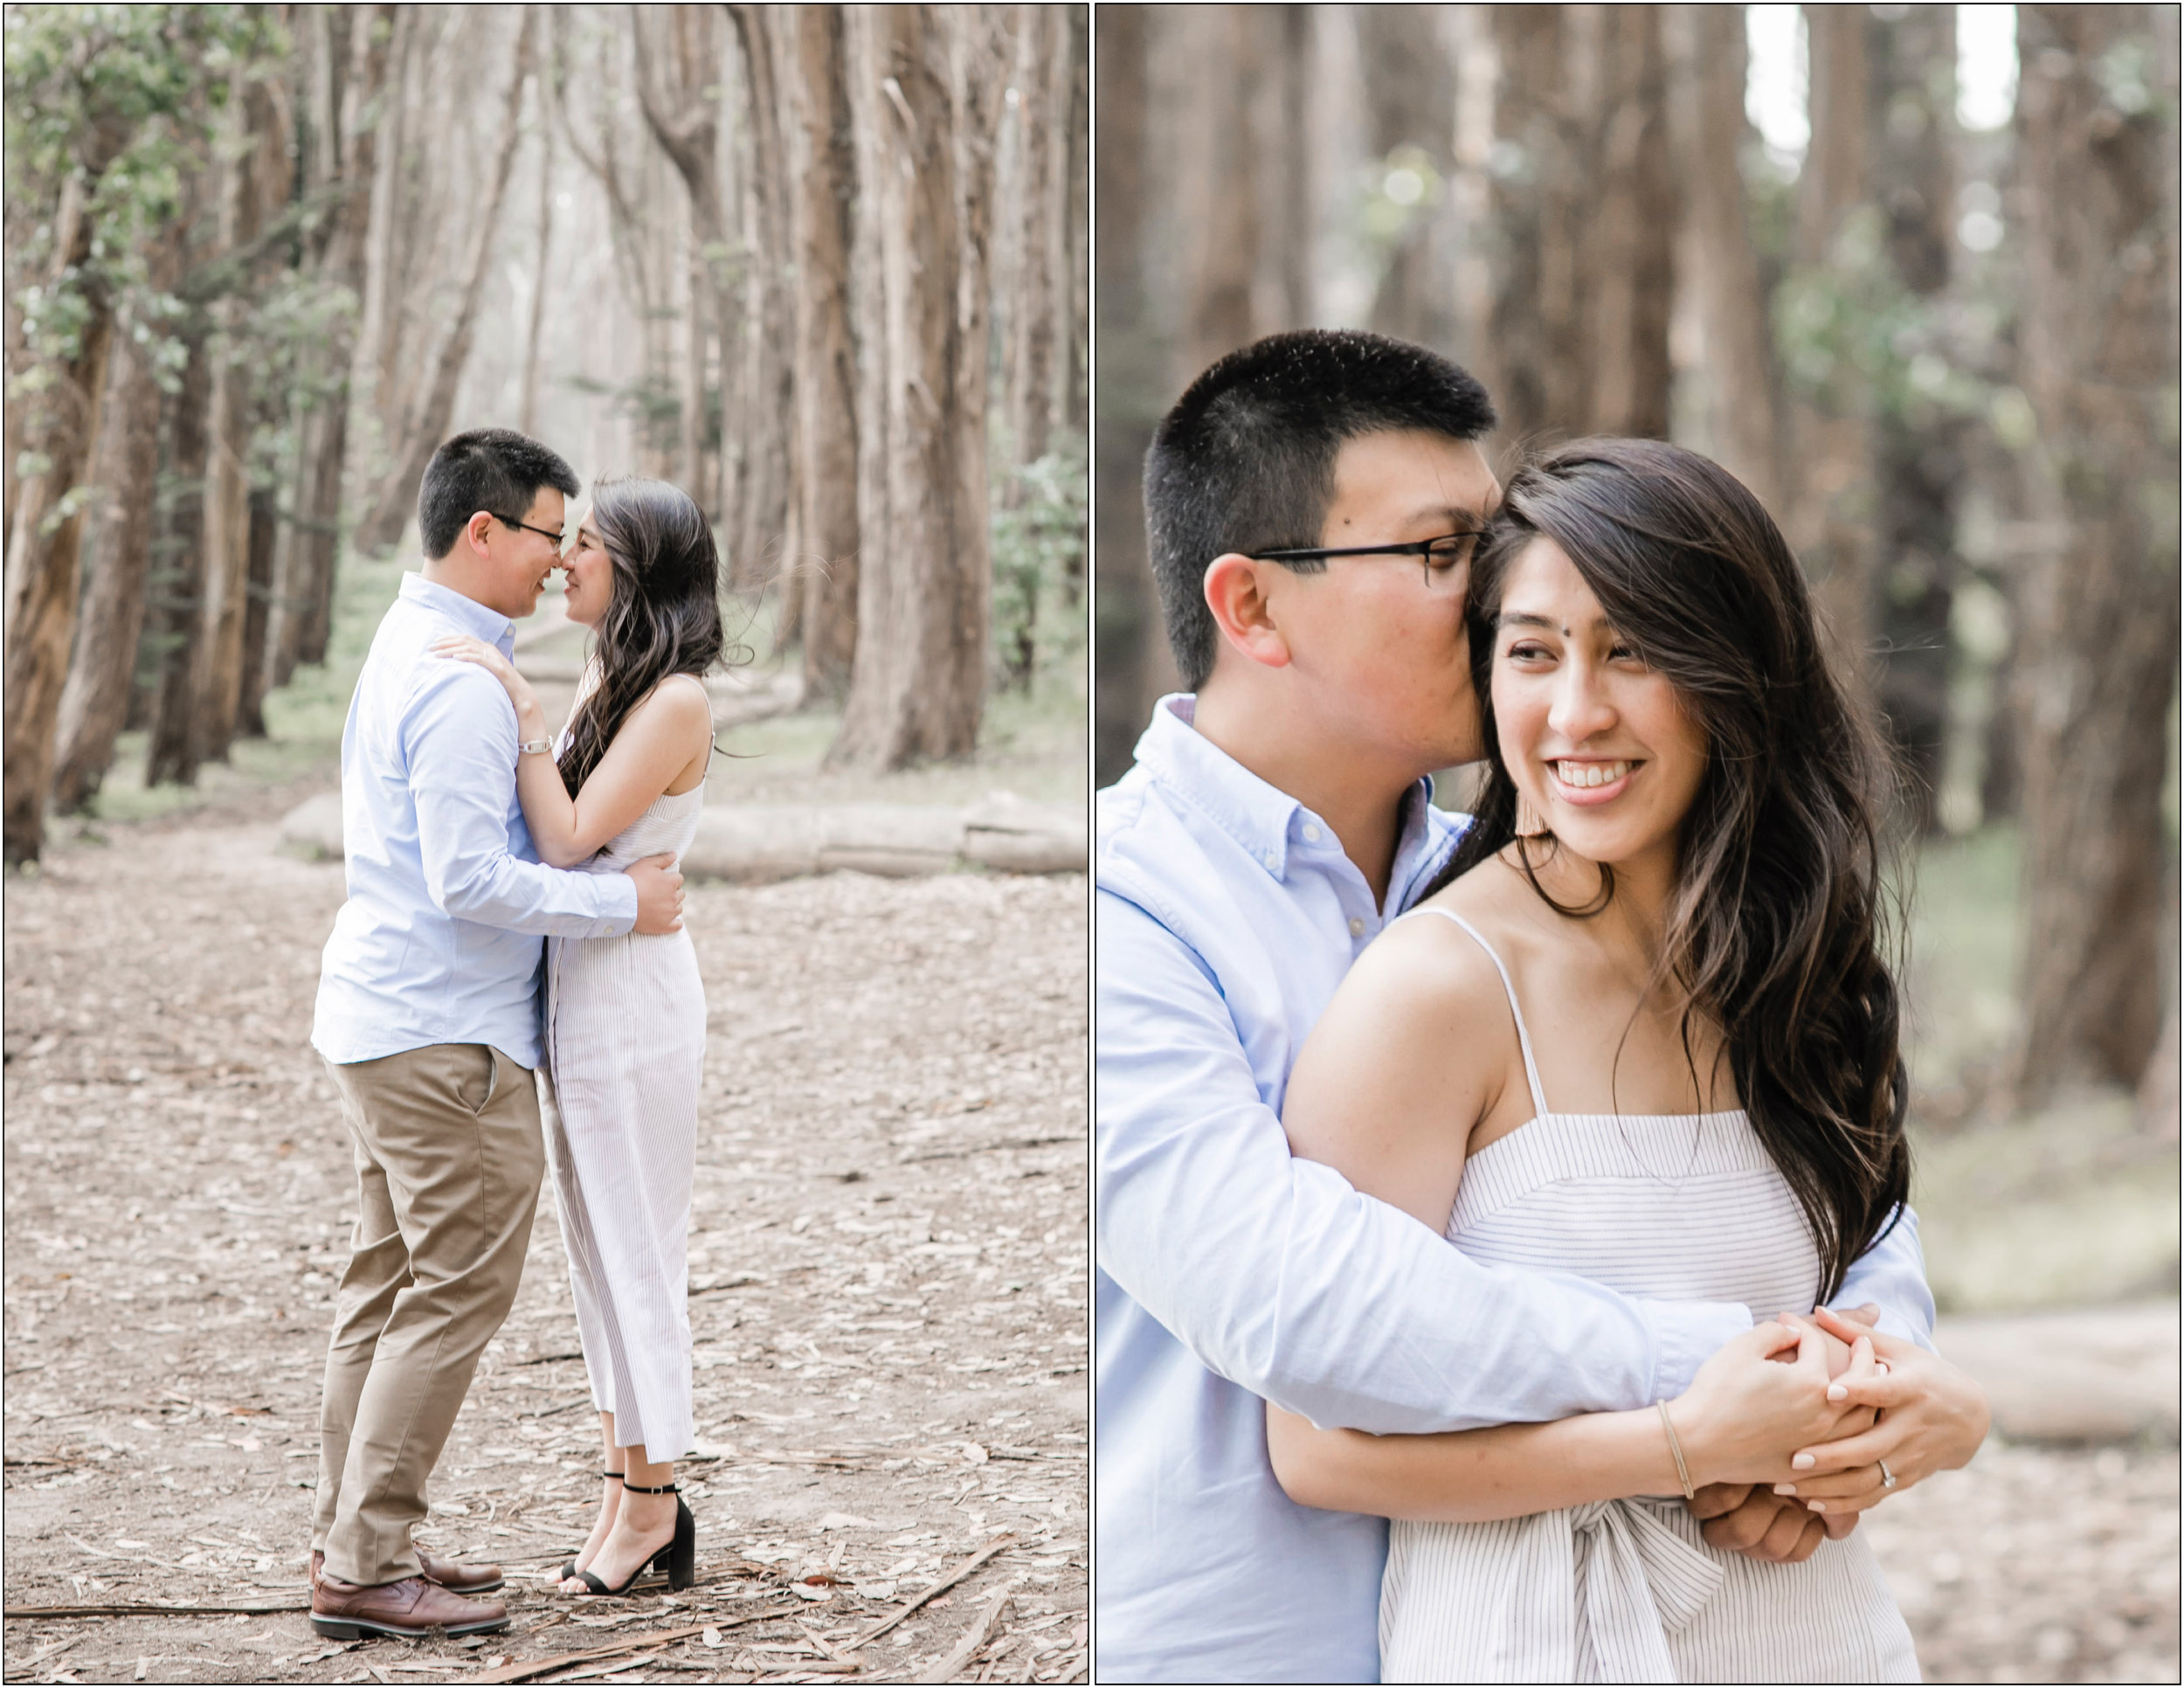 San Francisco Photographer - Michelle Chang Photography